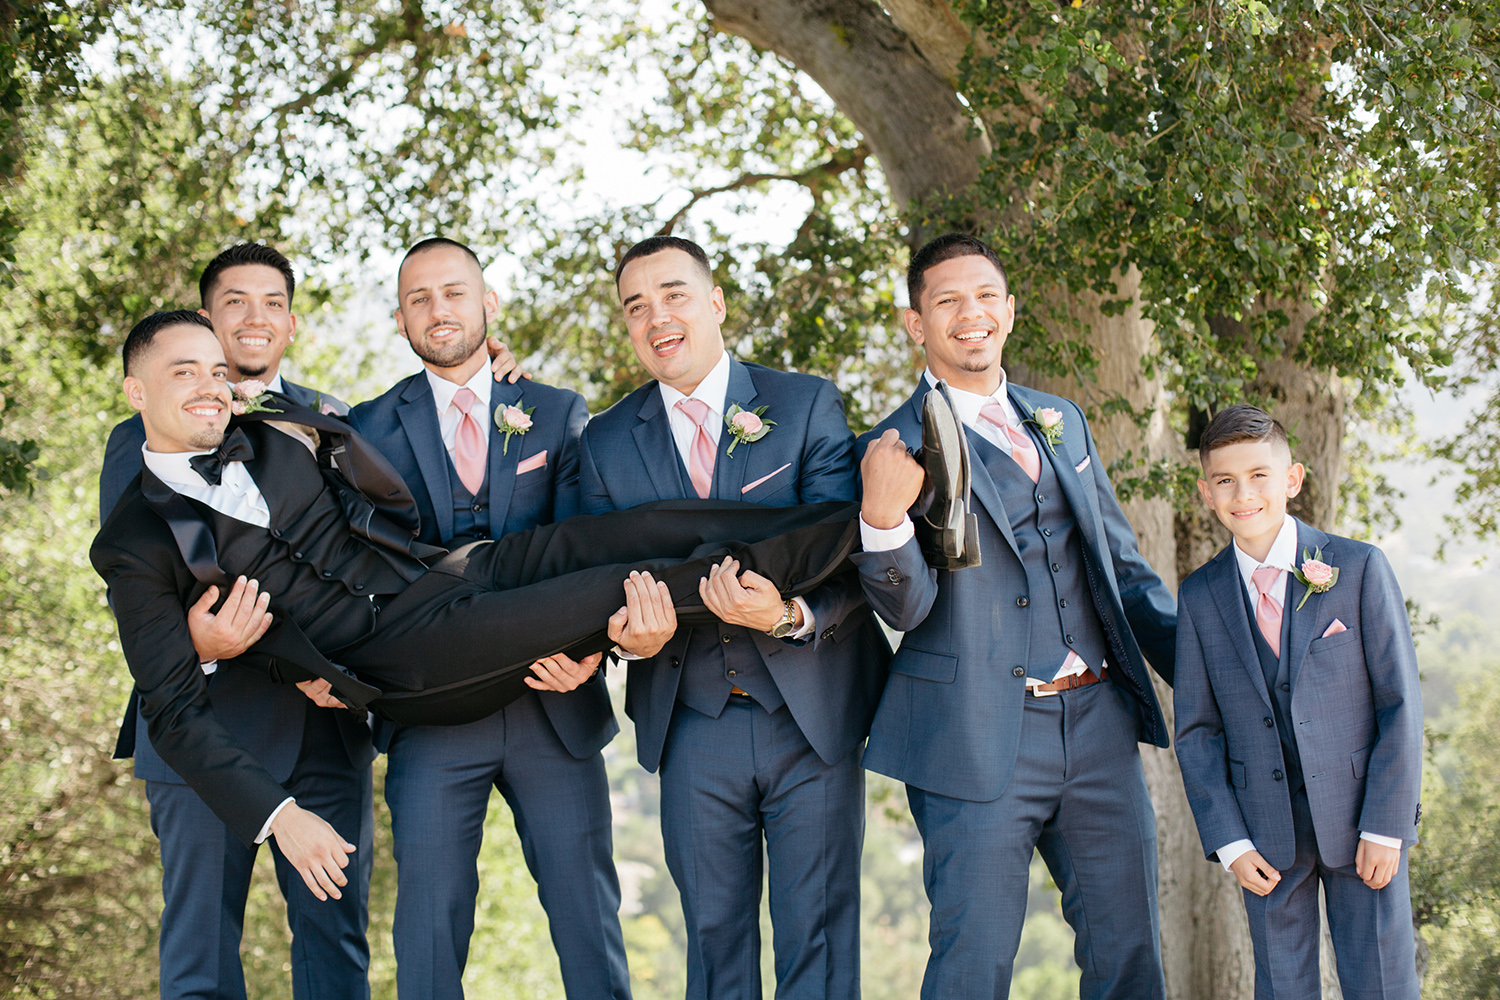 A group of groomsmen in blue suits holding a groom up.